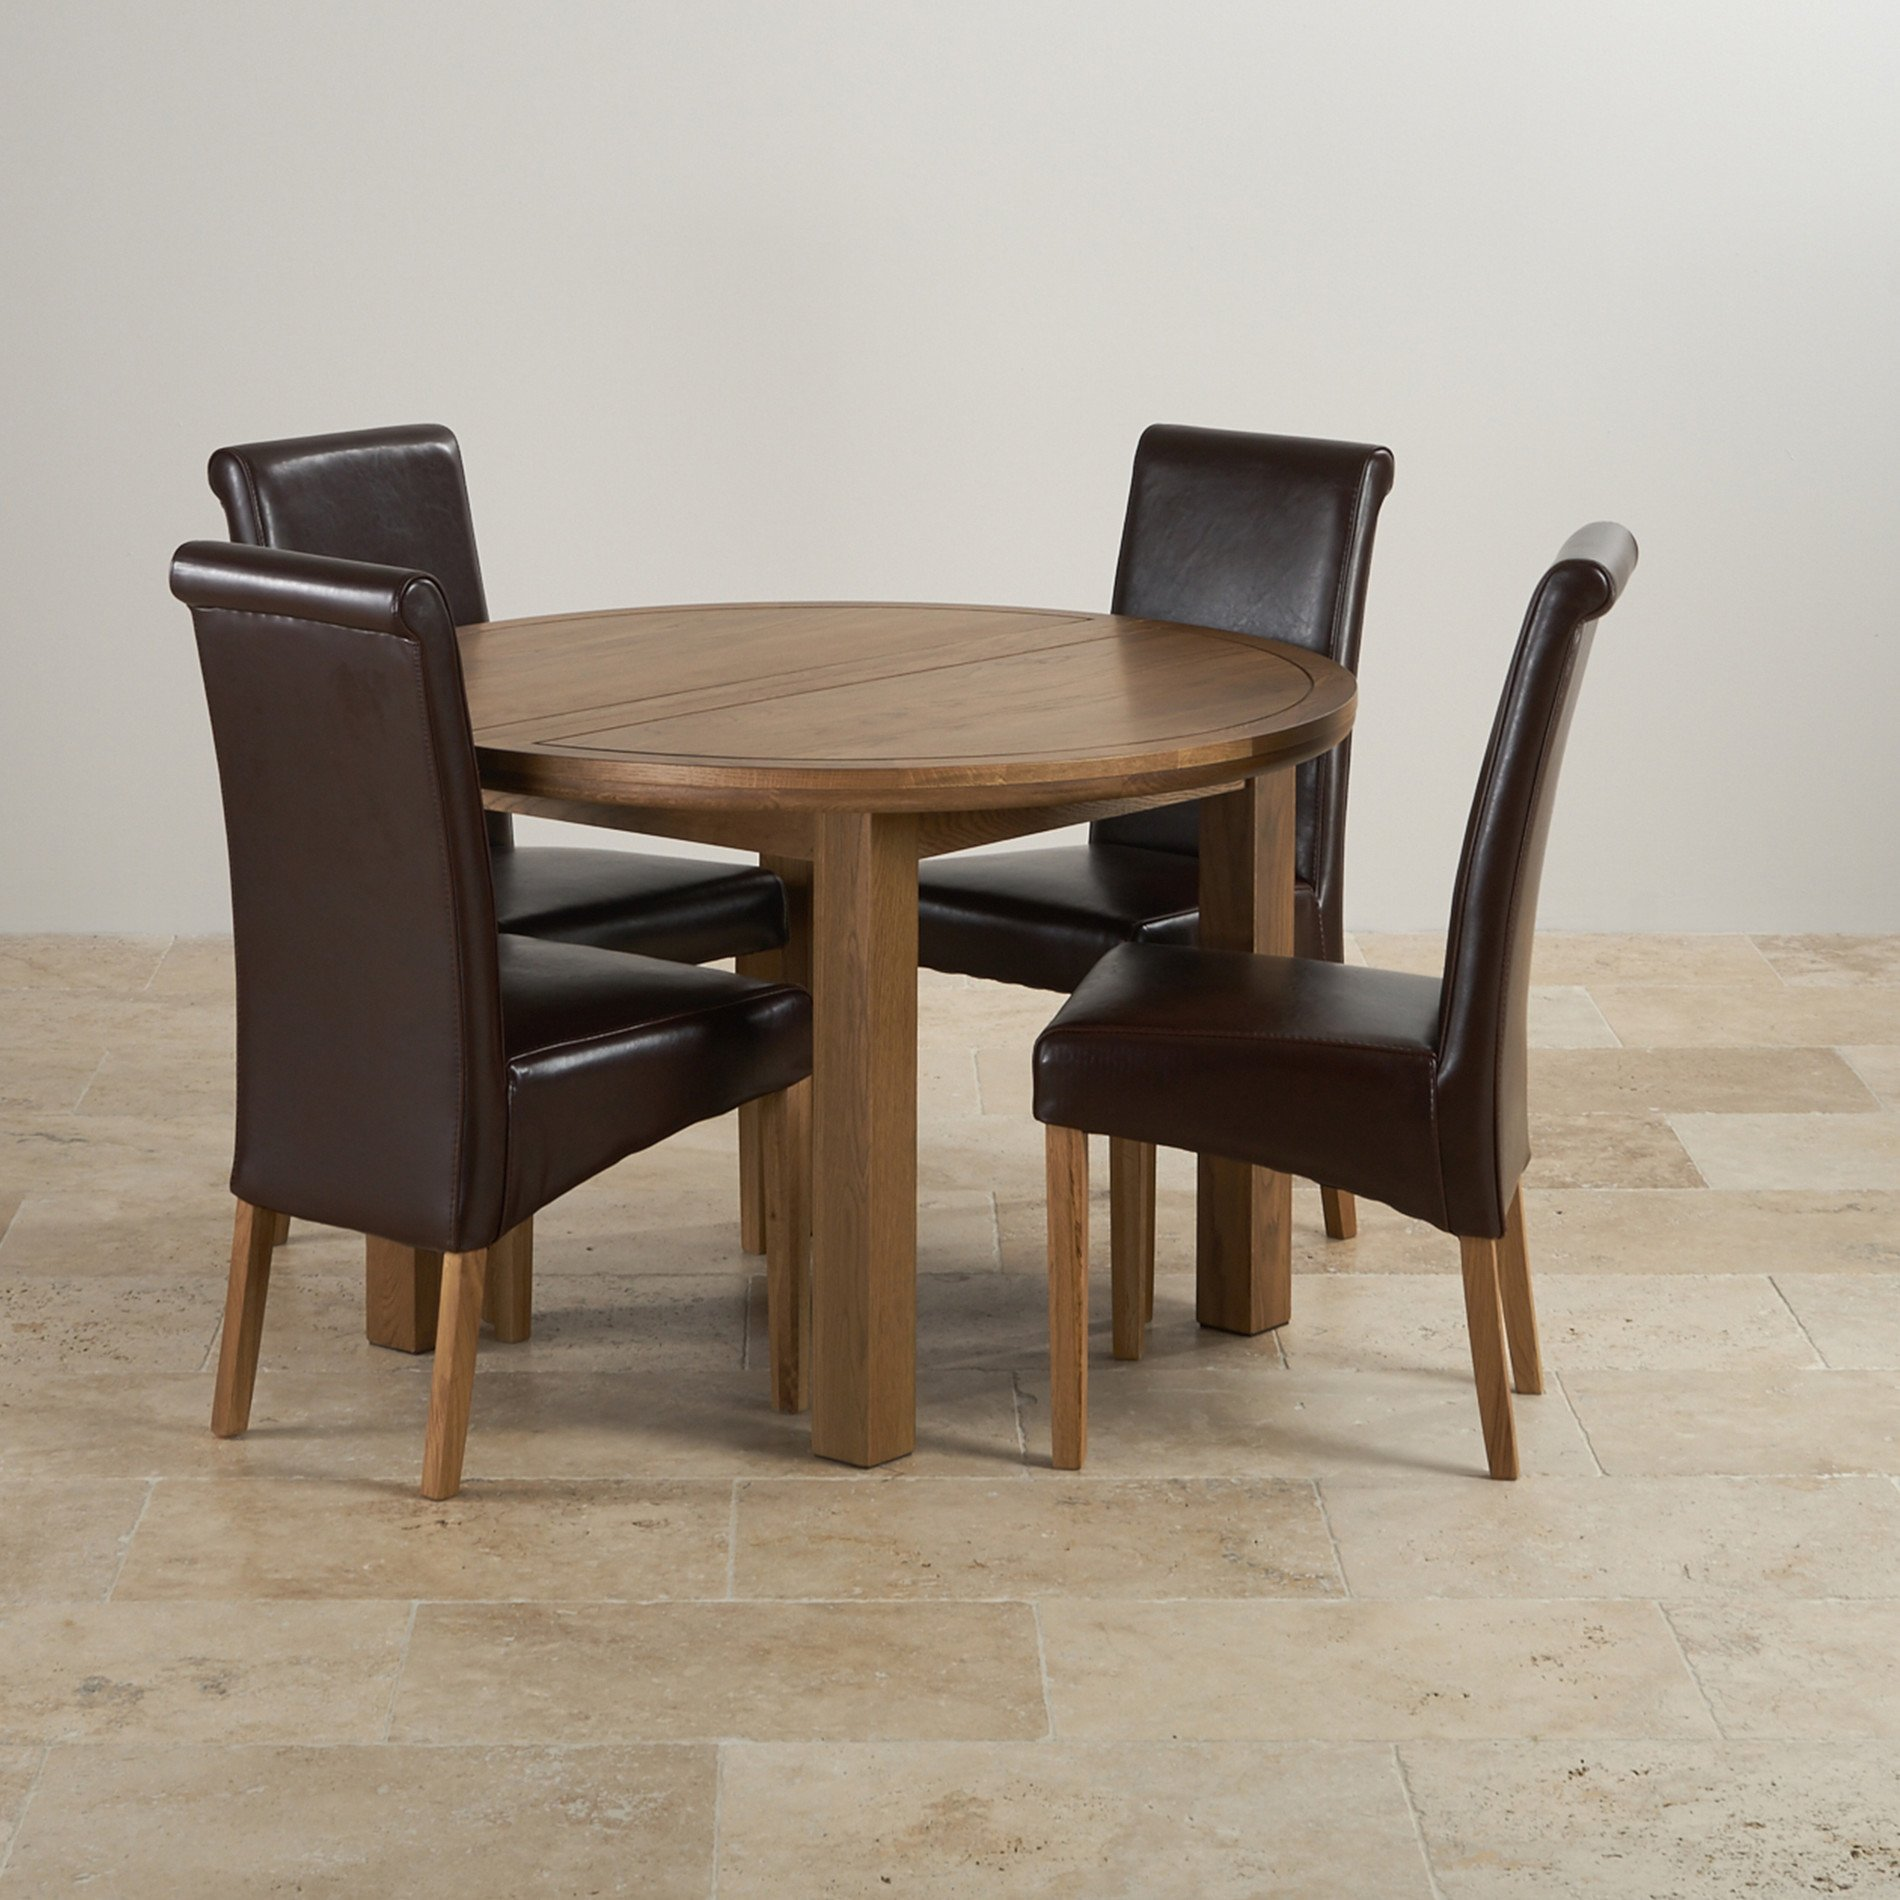 Knightsbridge round extending dining set dining table 4 chairs - Extended dining table sets ...